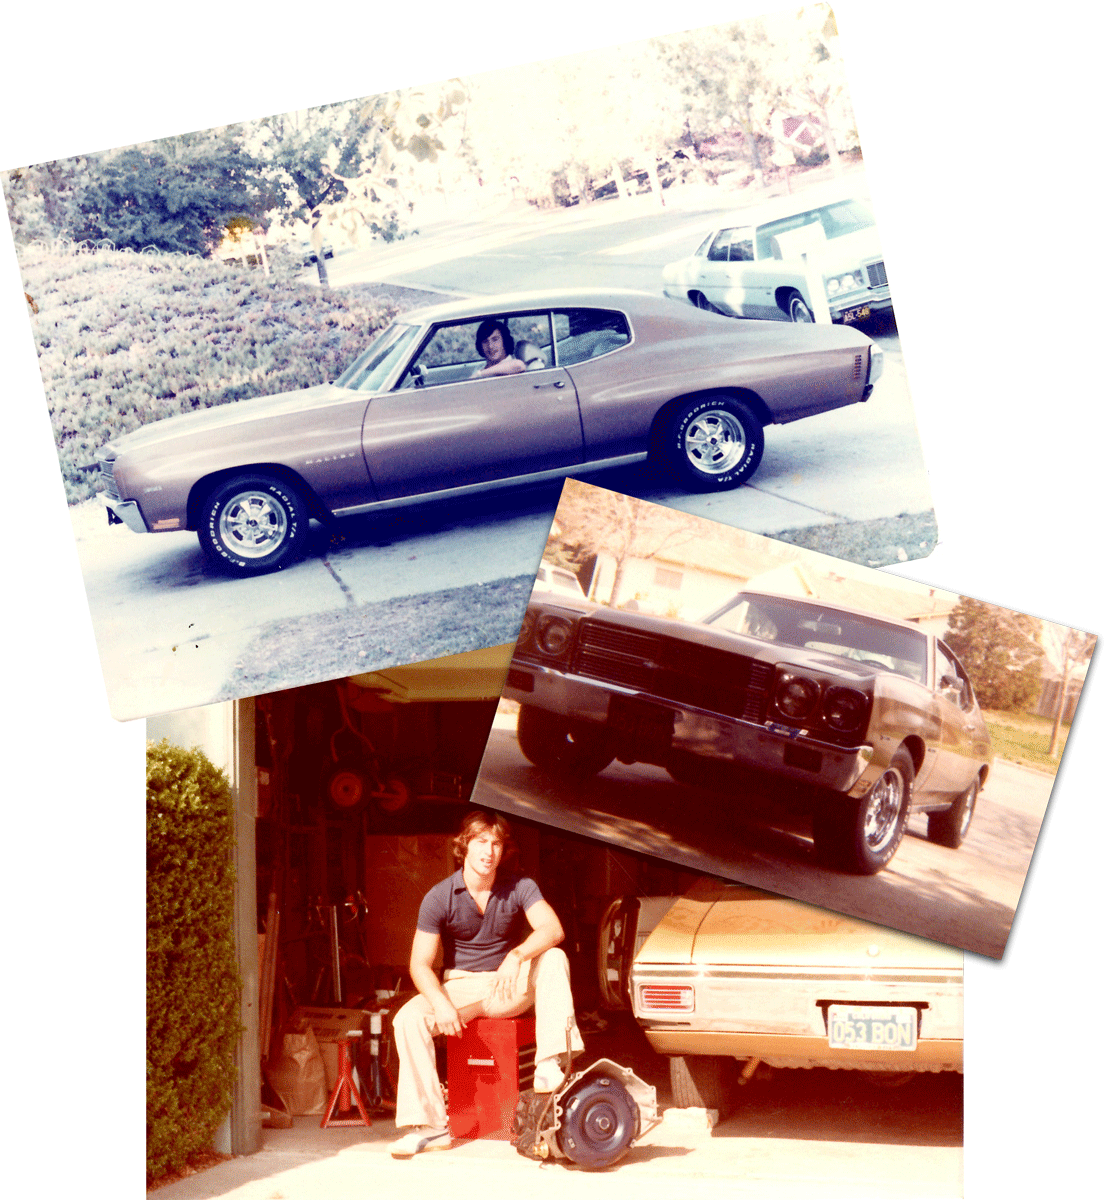 A few photos of of me and my '70 Chevelle